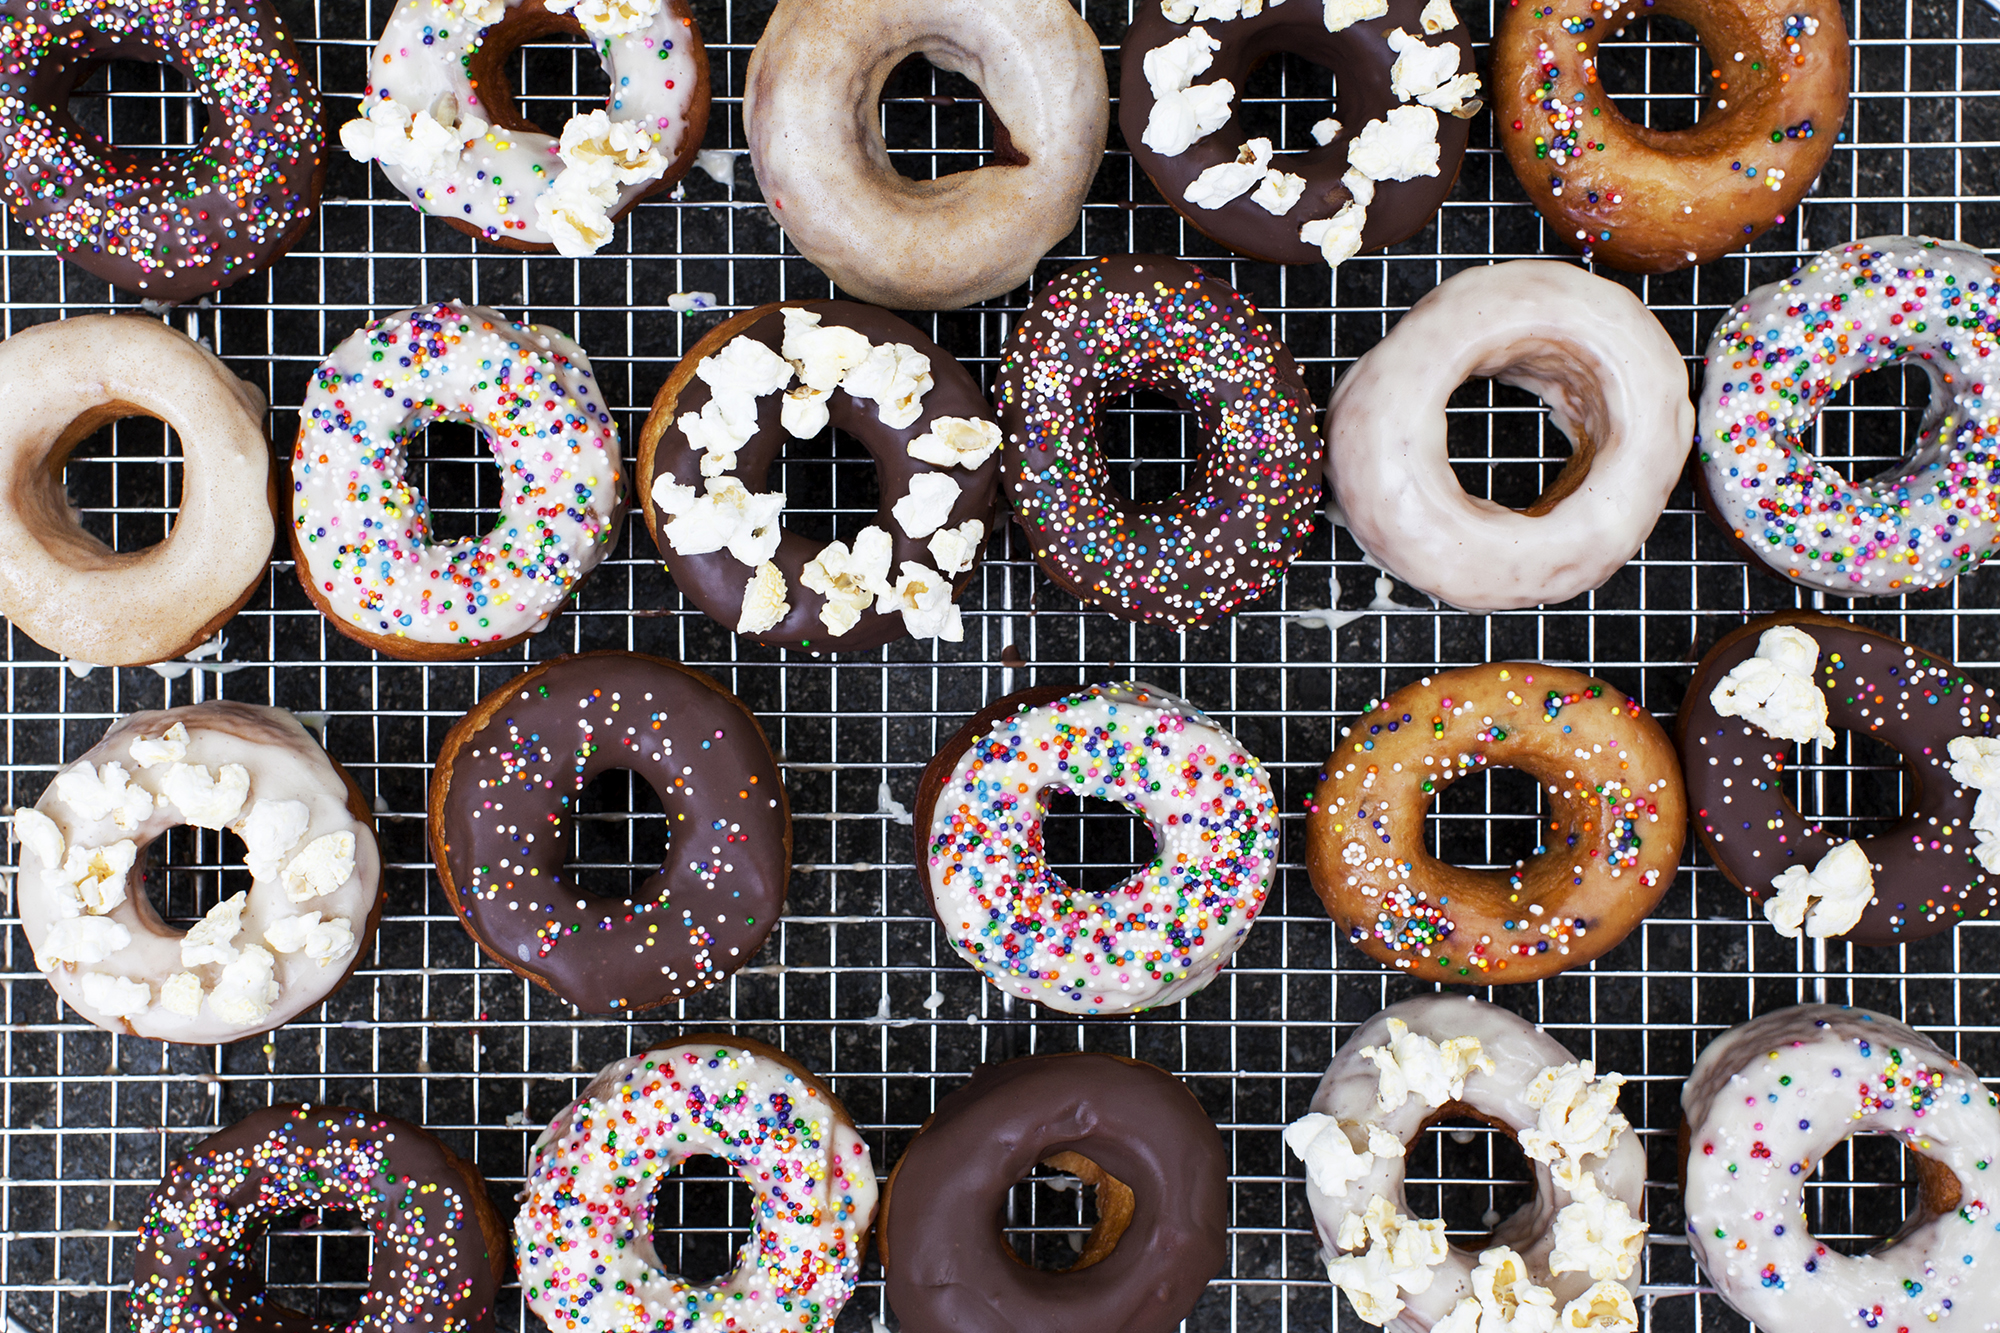 Recipe: Homemade Doughnuts